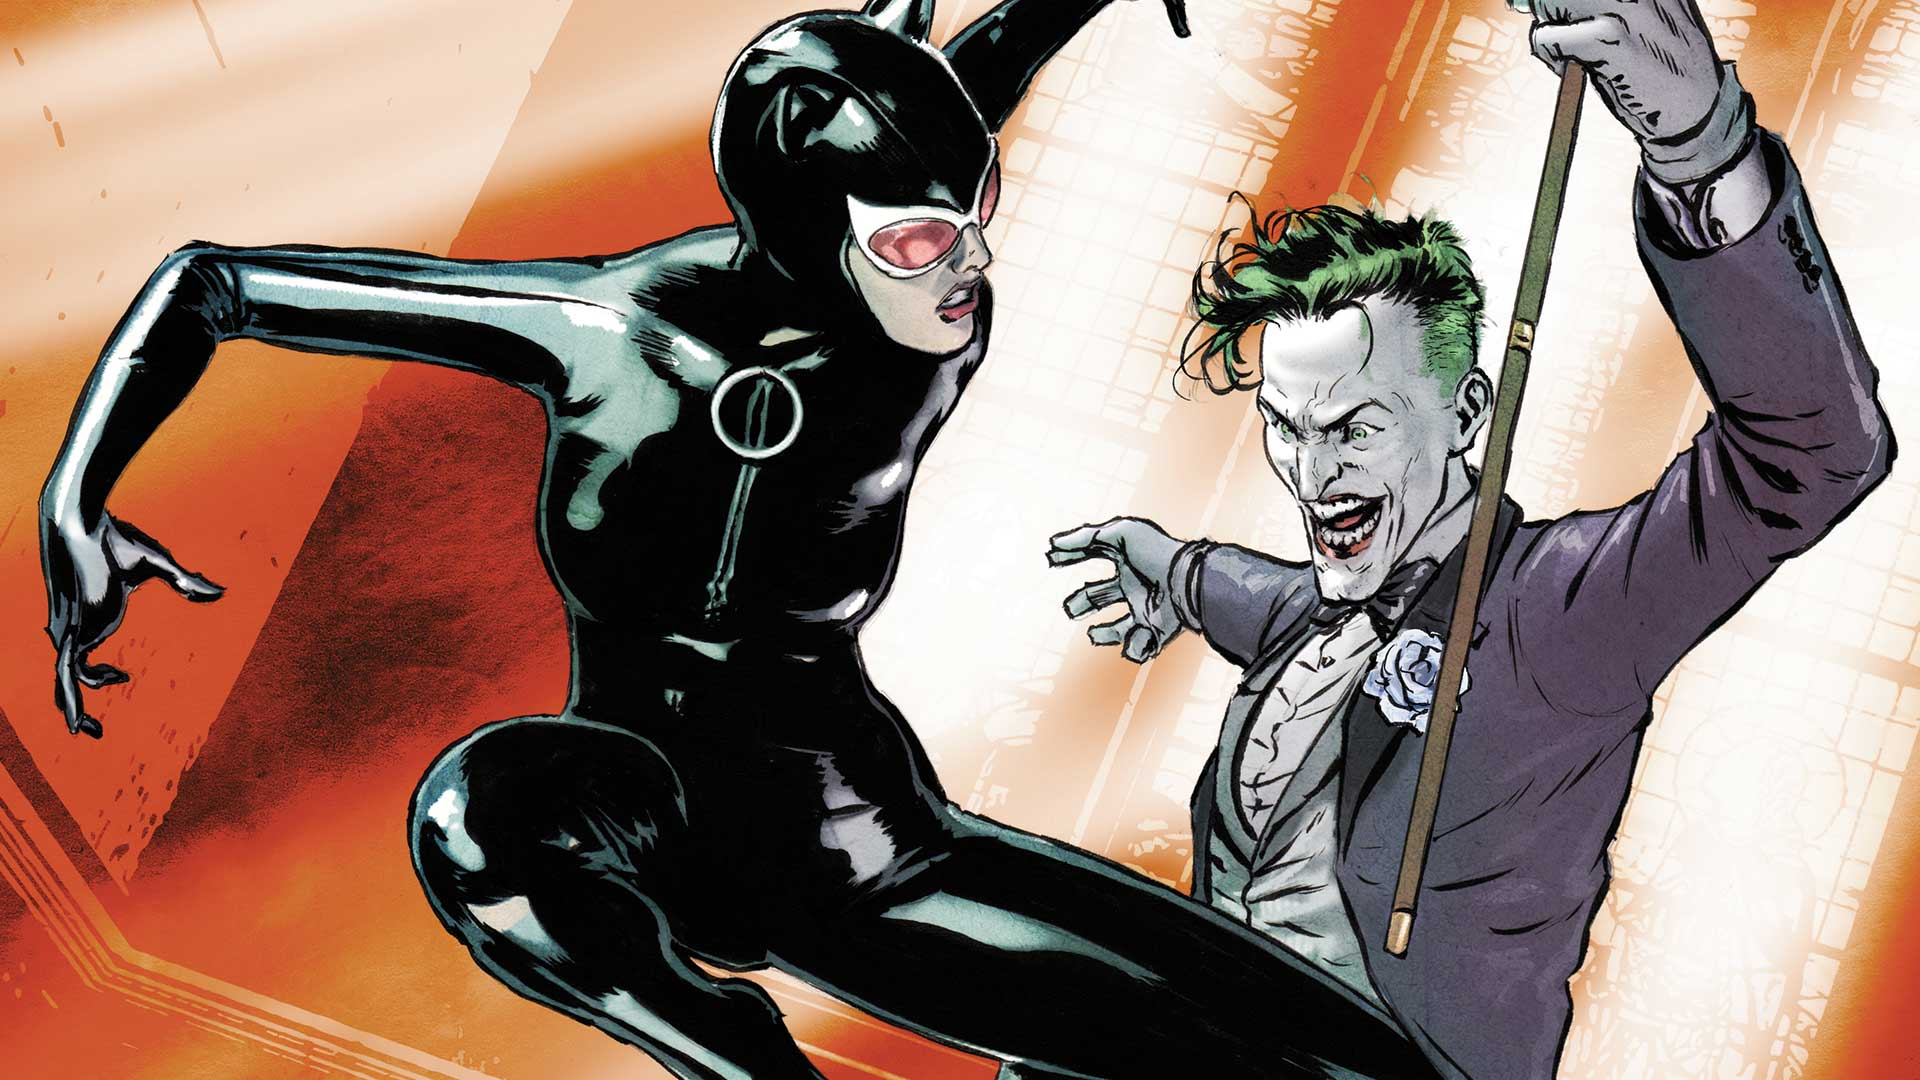 Batman #49 review: Who really knows Batman better, Catwoman or the Joker?